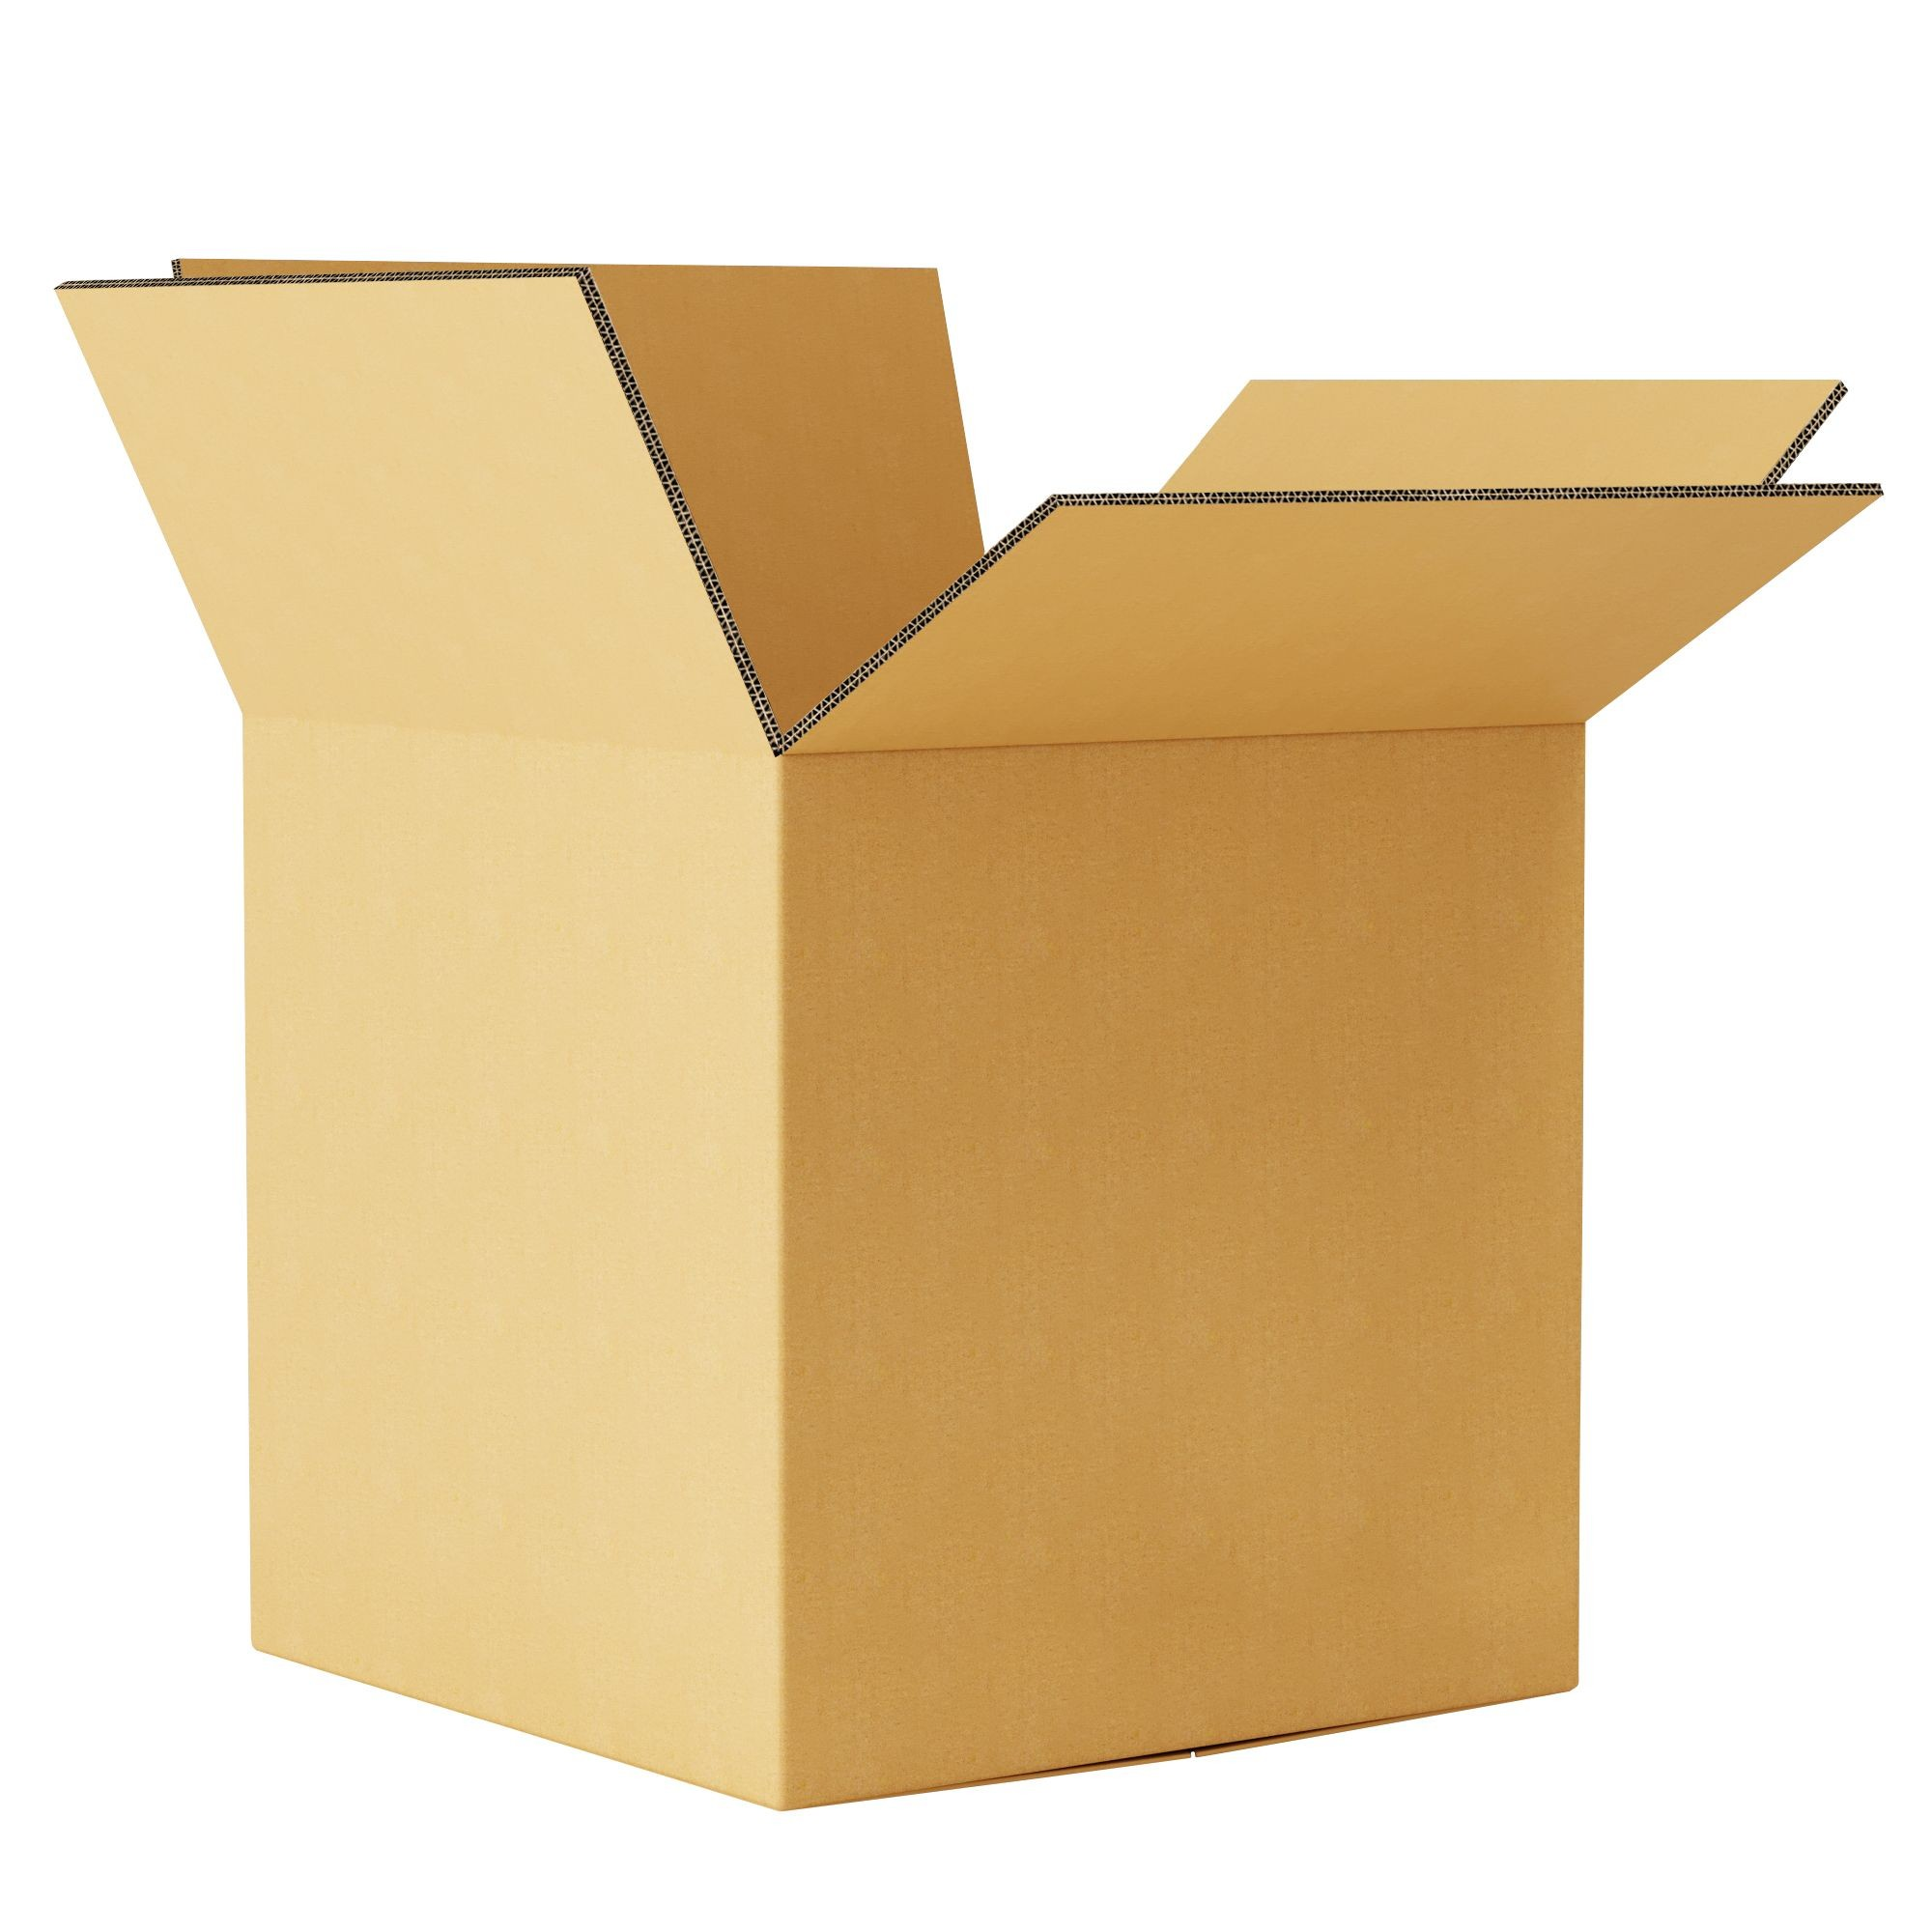 TOTALPACK® Ultra-Strong Double-Wall, Cardboard Corrugated